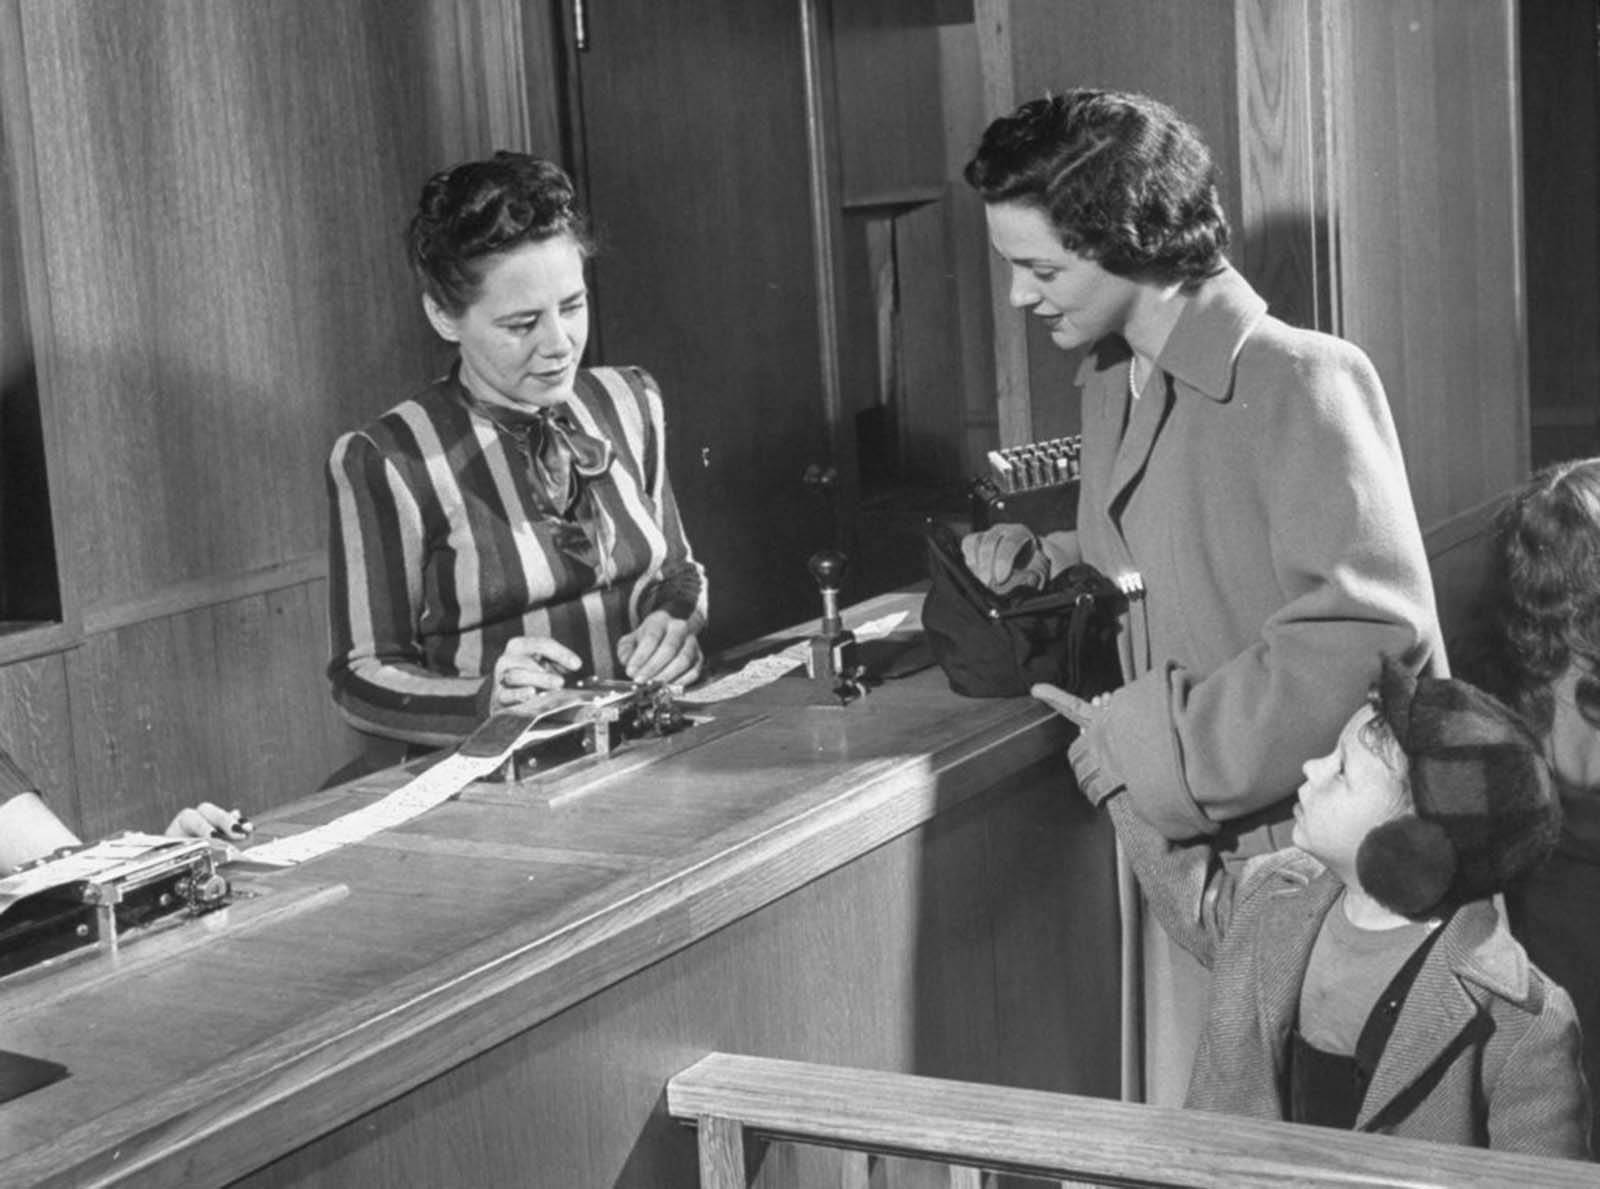 The shopper gives a punched-out card to the cashier, who totals the prices and triggers machinery behind the scenes.